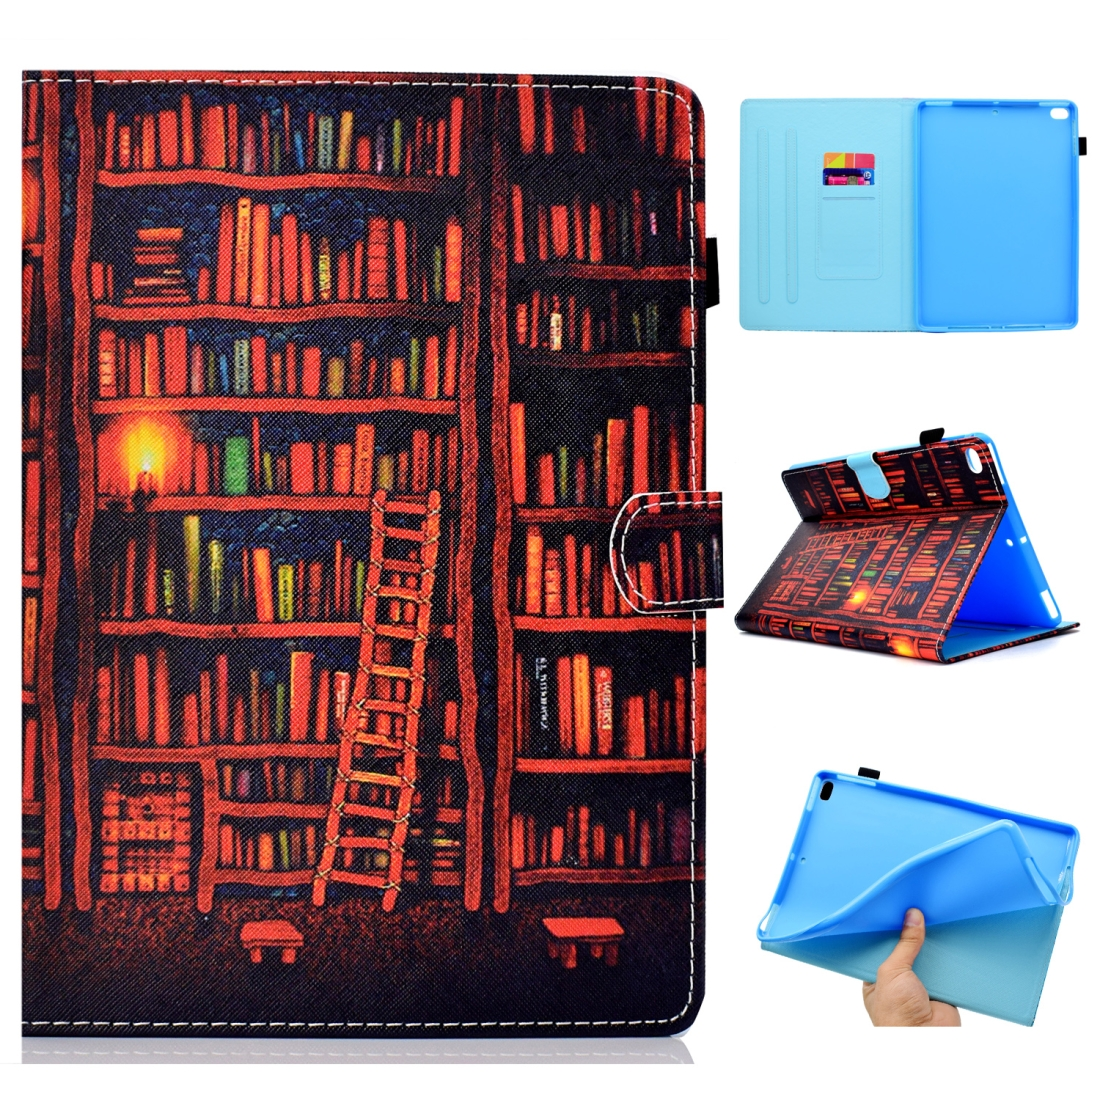 Case For iPad 5/ 6 Artistic Stitching Leather Case, with Sleeves & Auto Sleep function (Bookshelf)